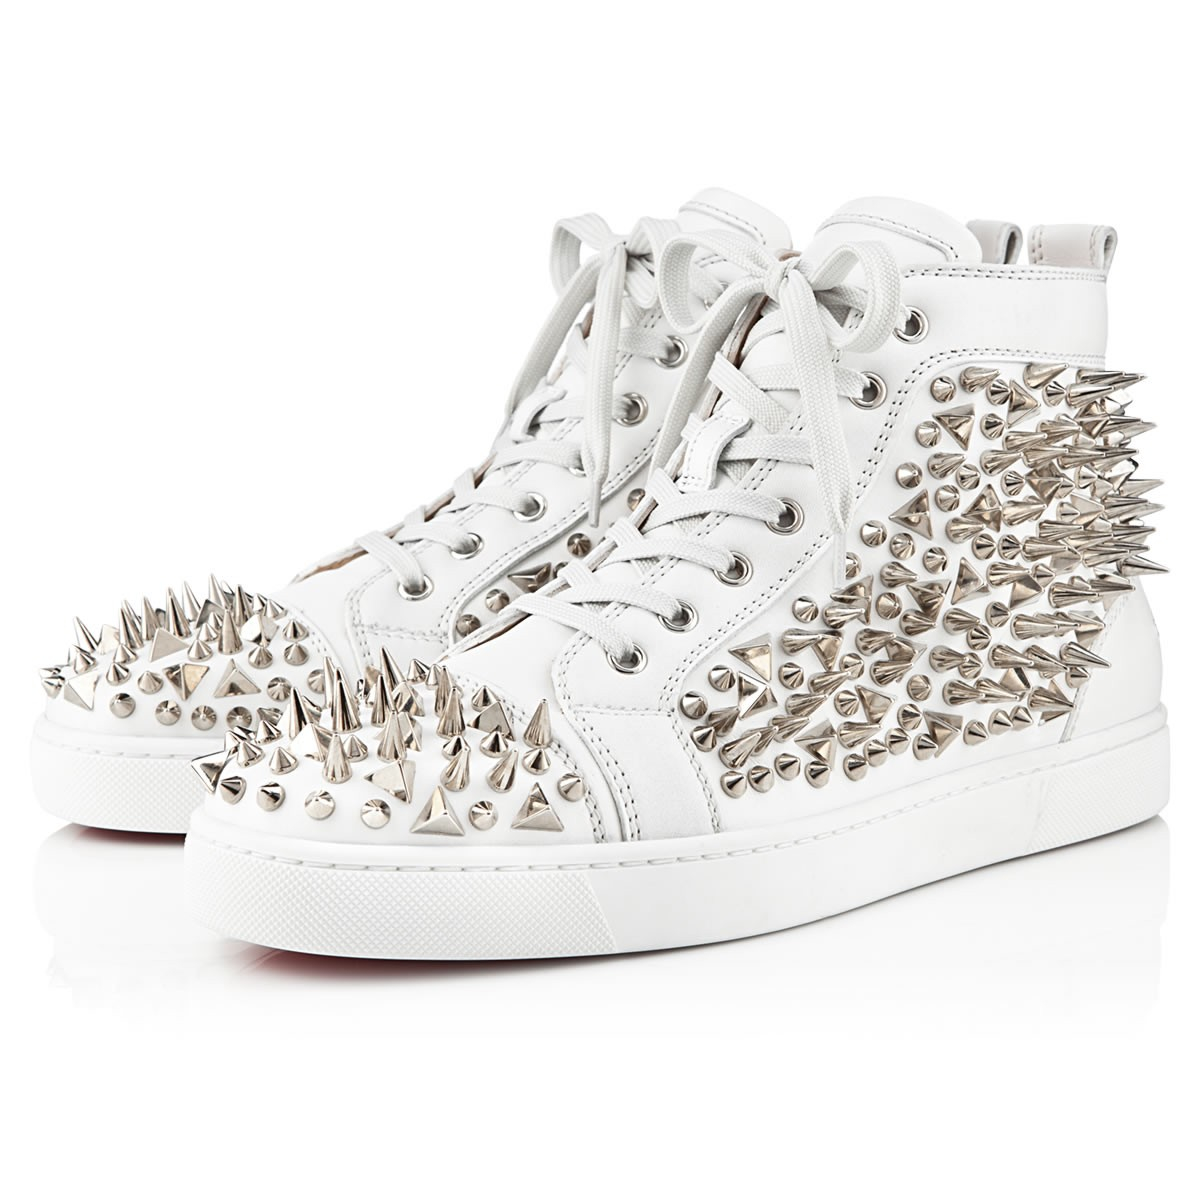 brand new 5823c ae044 Christian Louboutin men's studded white high trainers